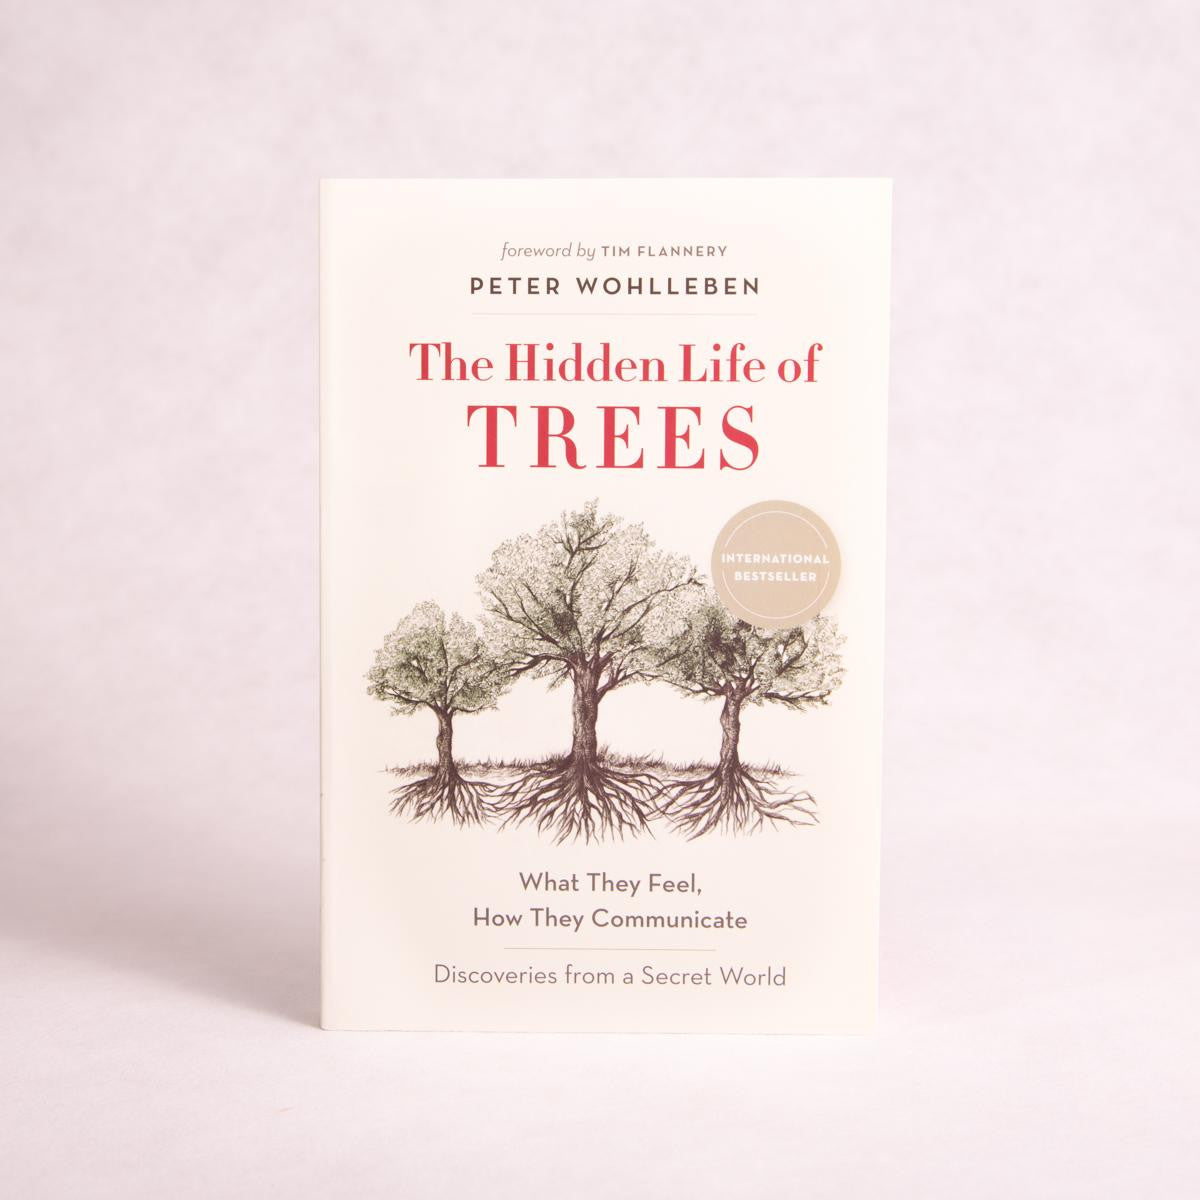 The Hidden Life of Trees | By Peter Wohlleben - Book - Throw Some Seeds